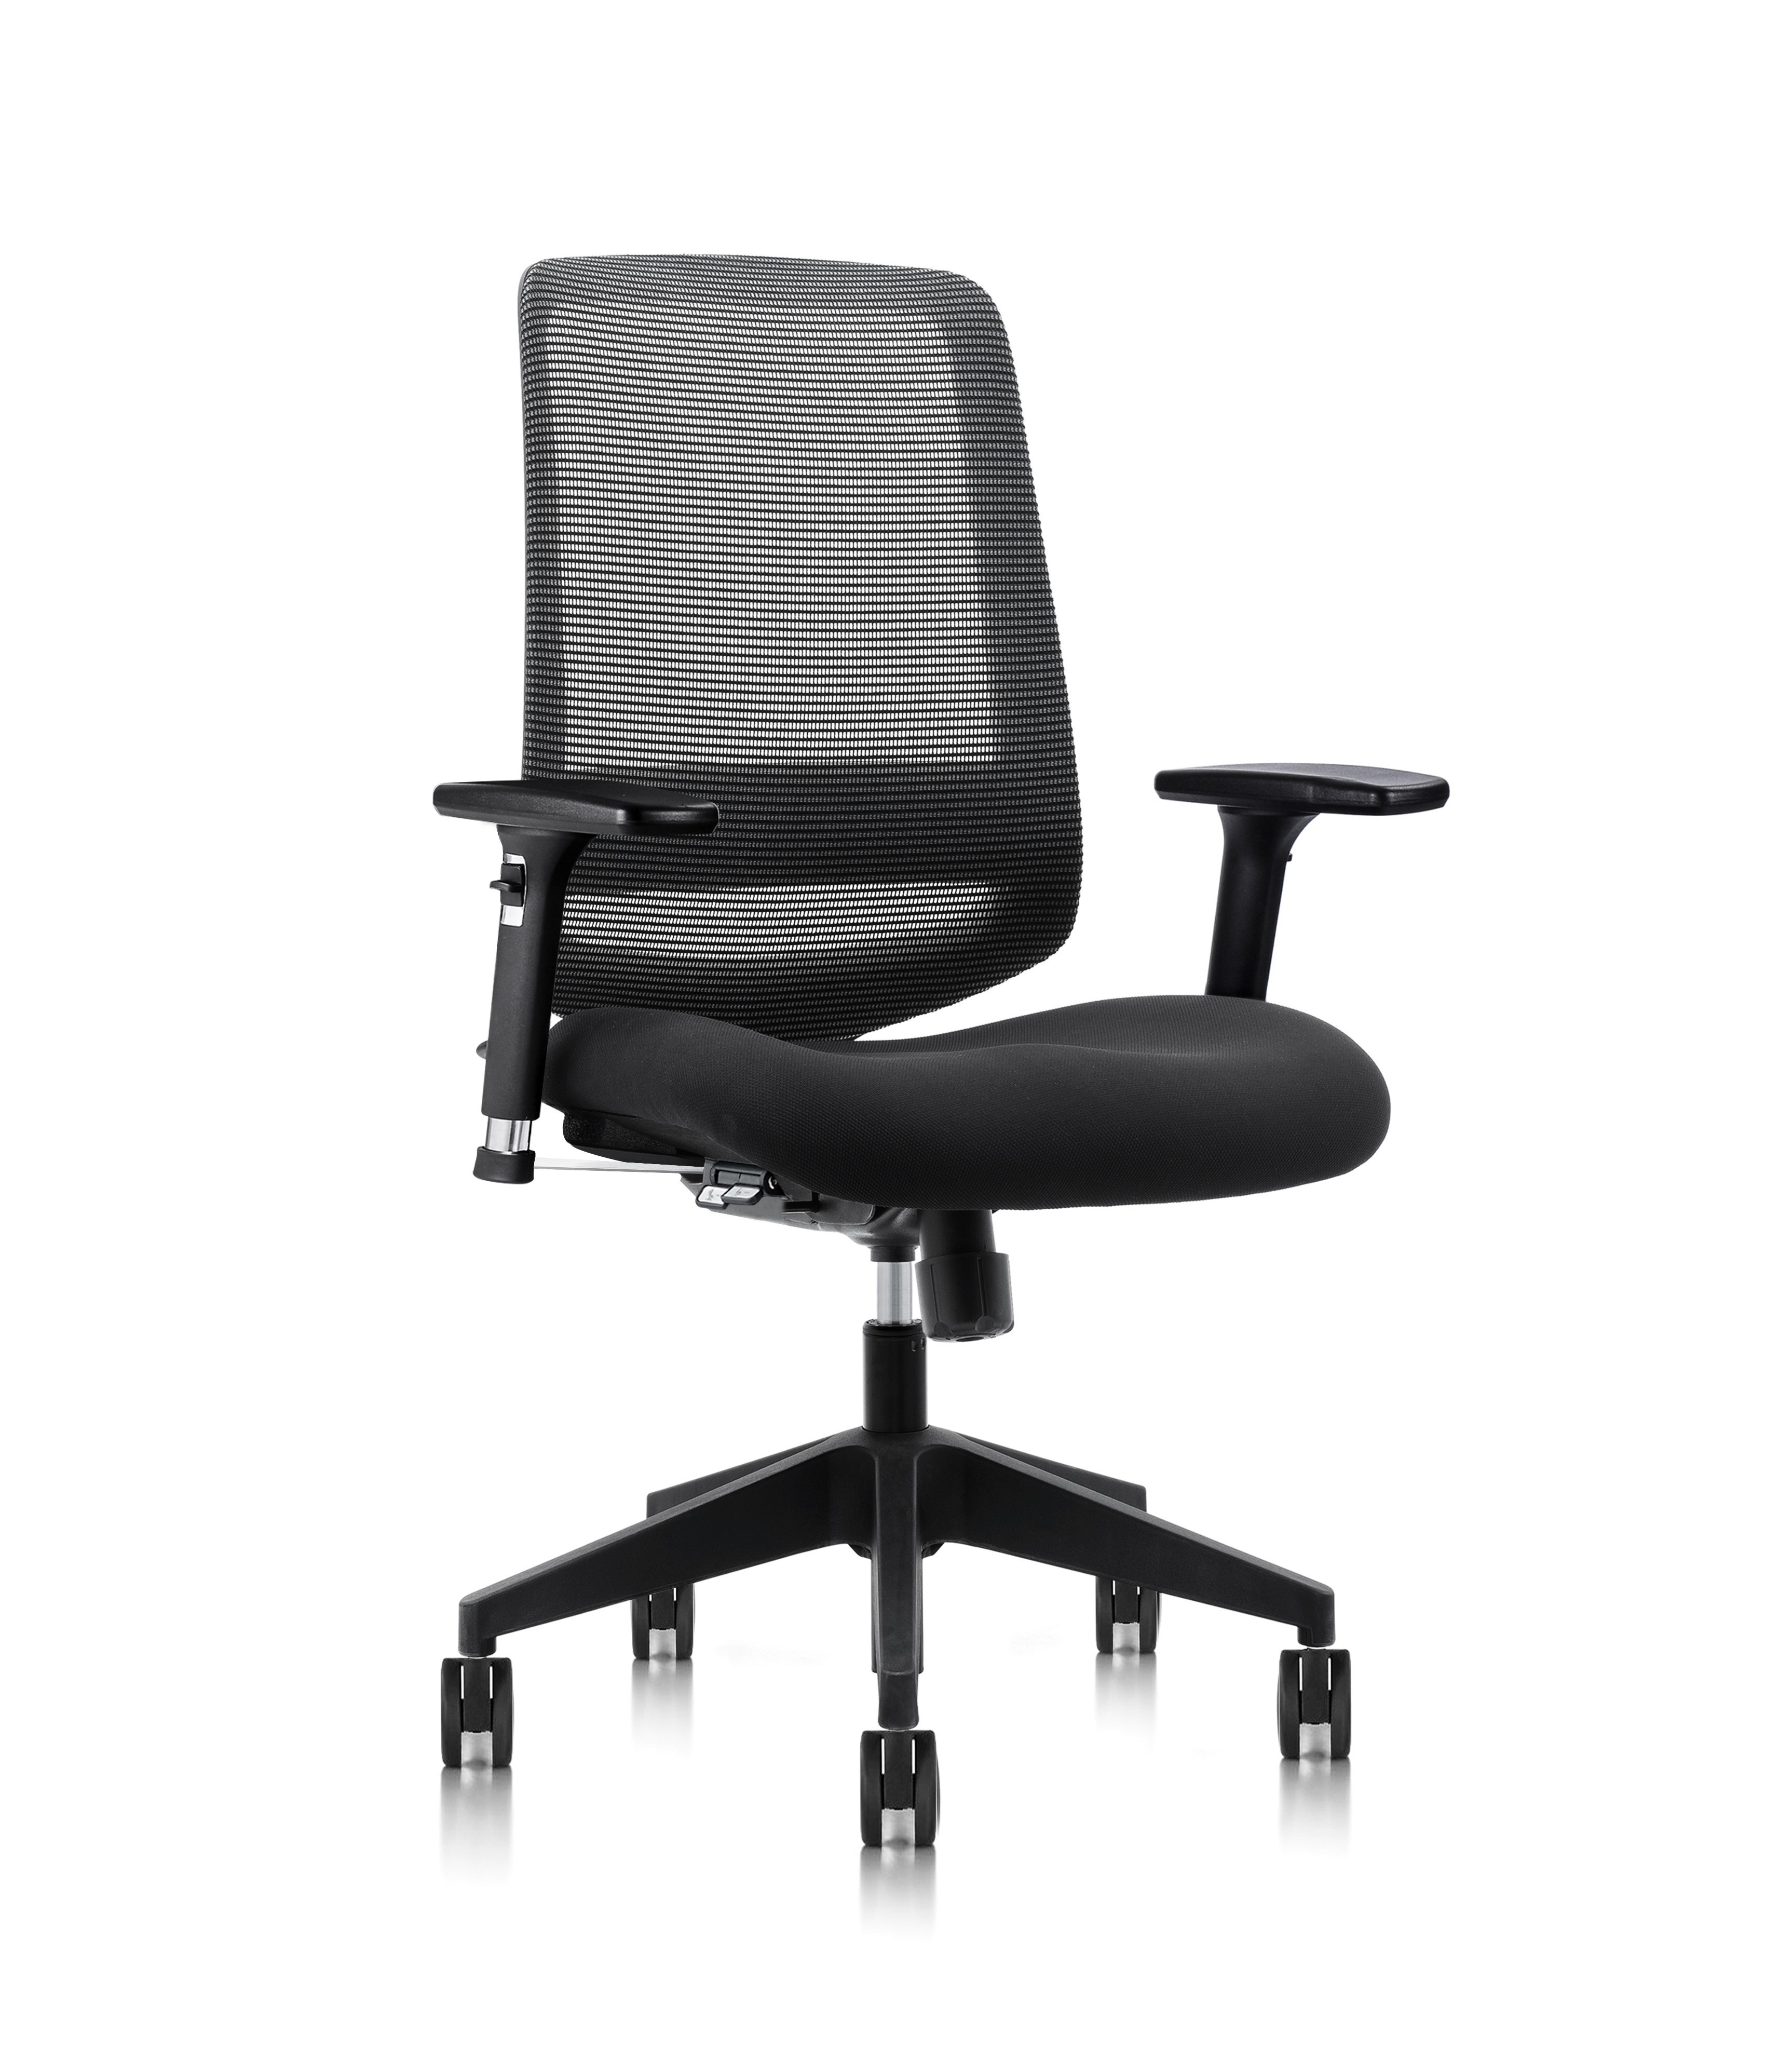 C19 - The Ultimate Contract Task Chair. This exceptionally comfortable, great value contract chair features ergonomic design and adjustment without compromising on style. Synchro mechanism at 2:1 ratio. Waterfall seat, 3D arms and pictoral controls.